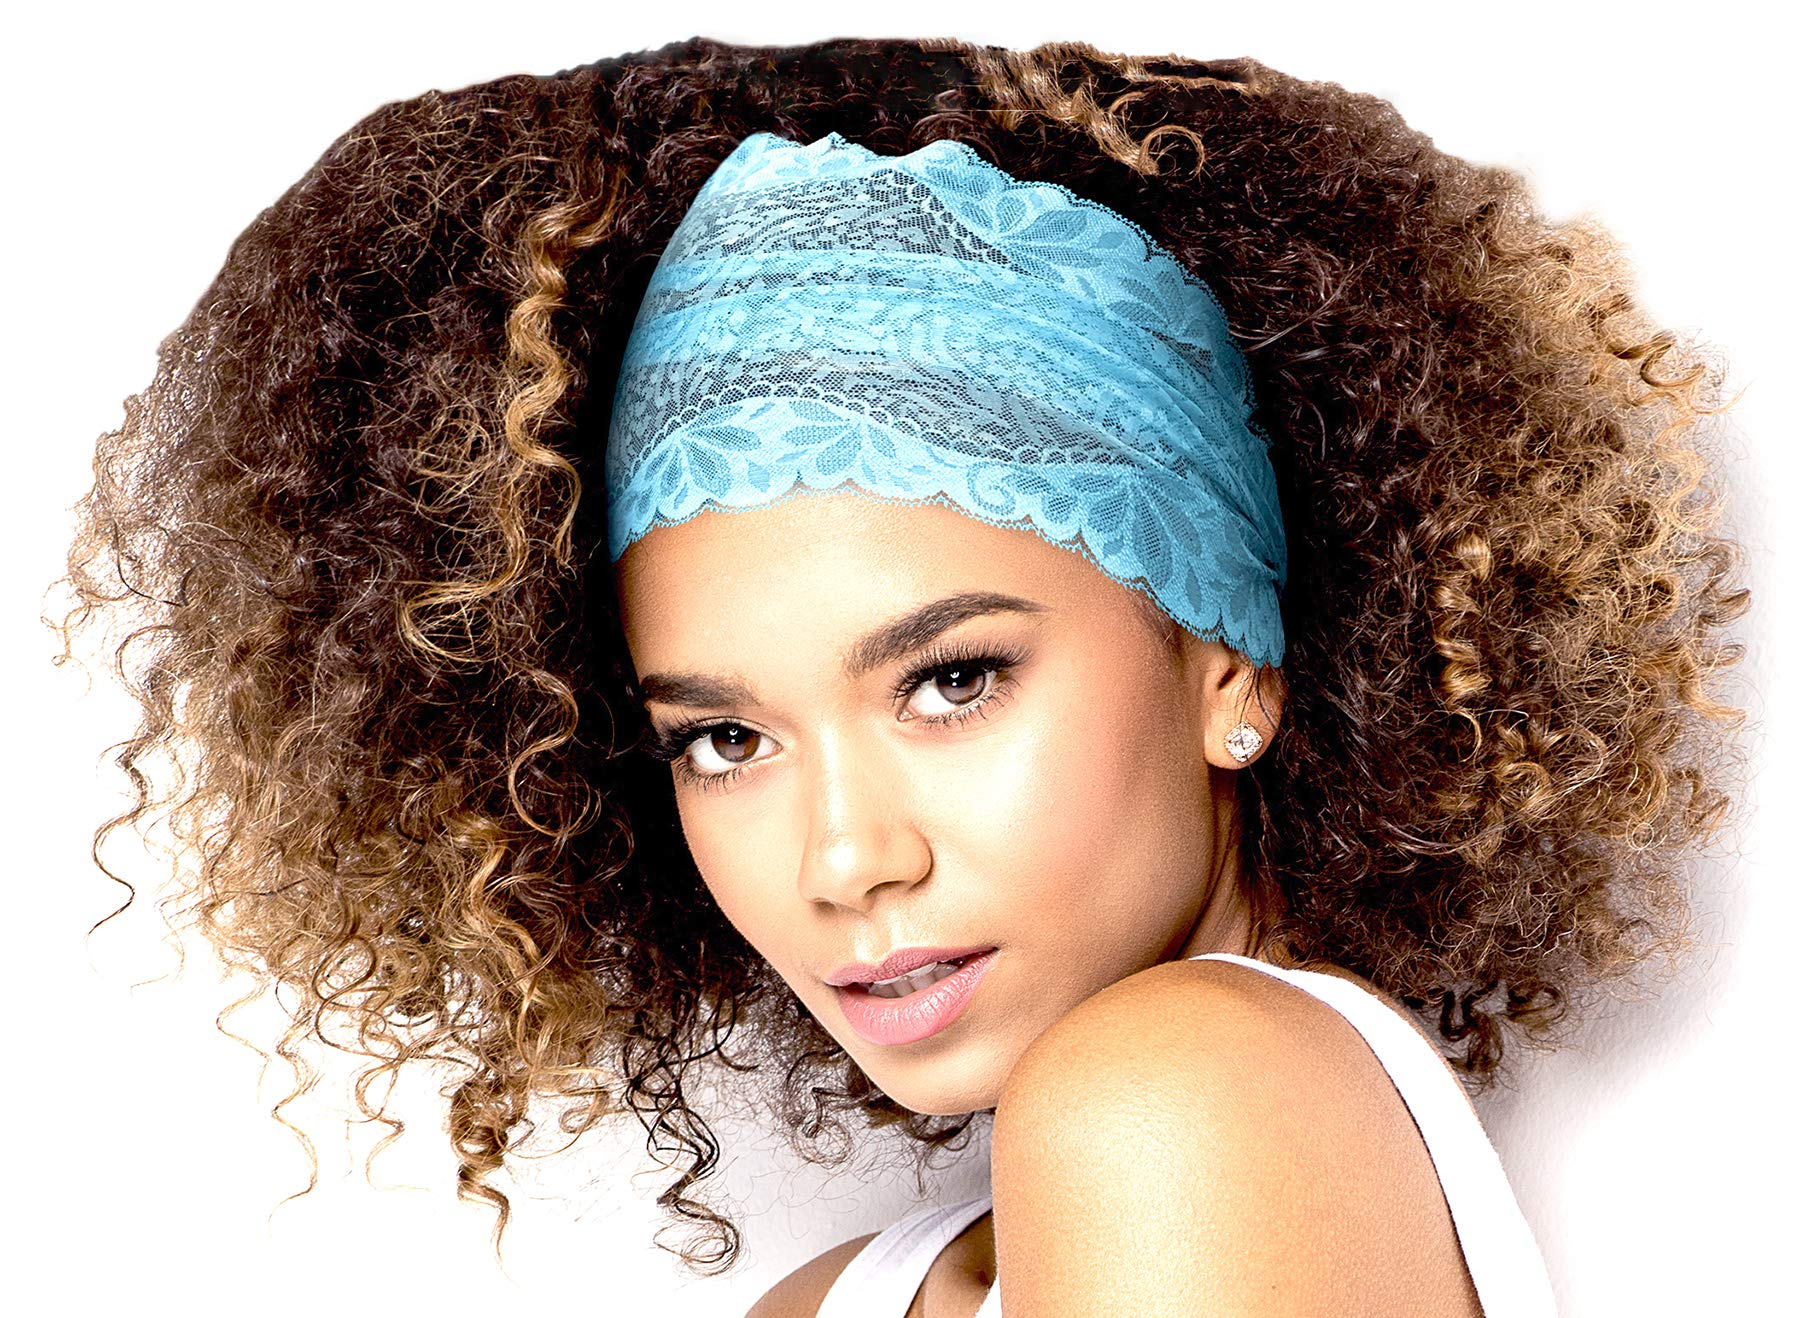 ShariRose Stunning Stretch Wide Floral Lace Headbands in Many Beautiful Colors Handmade (Turquoise Shine)